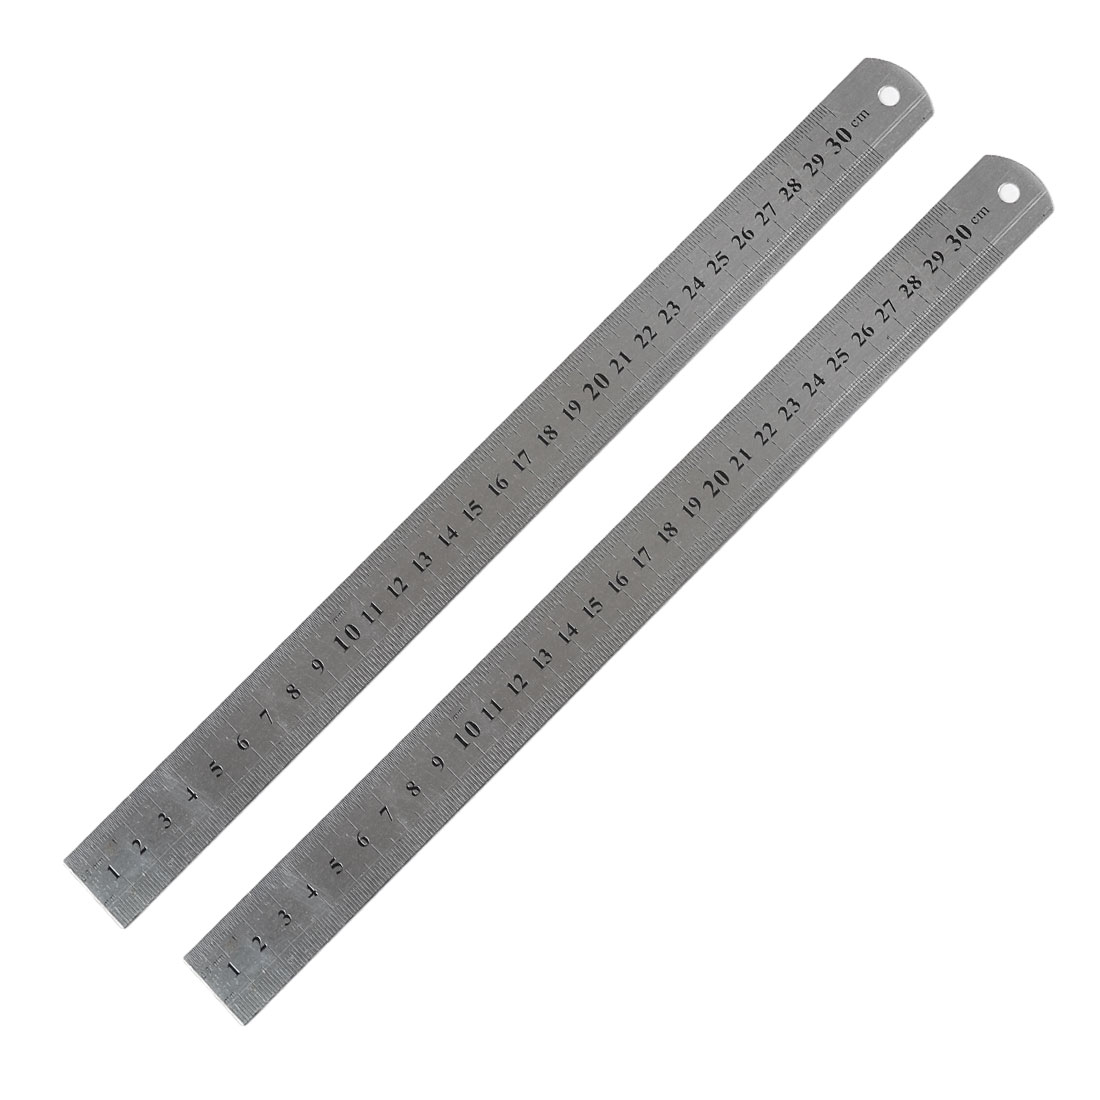 2 Pcs Metric 30cm Stainless Steel Straight Ruler Measuring Tool 12""